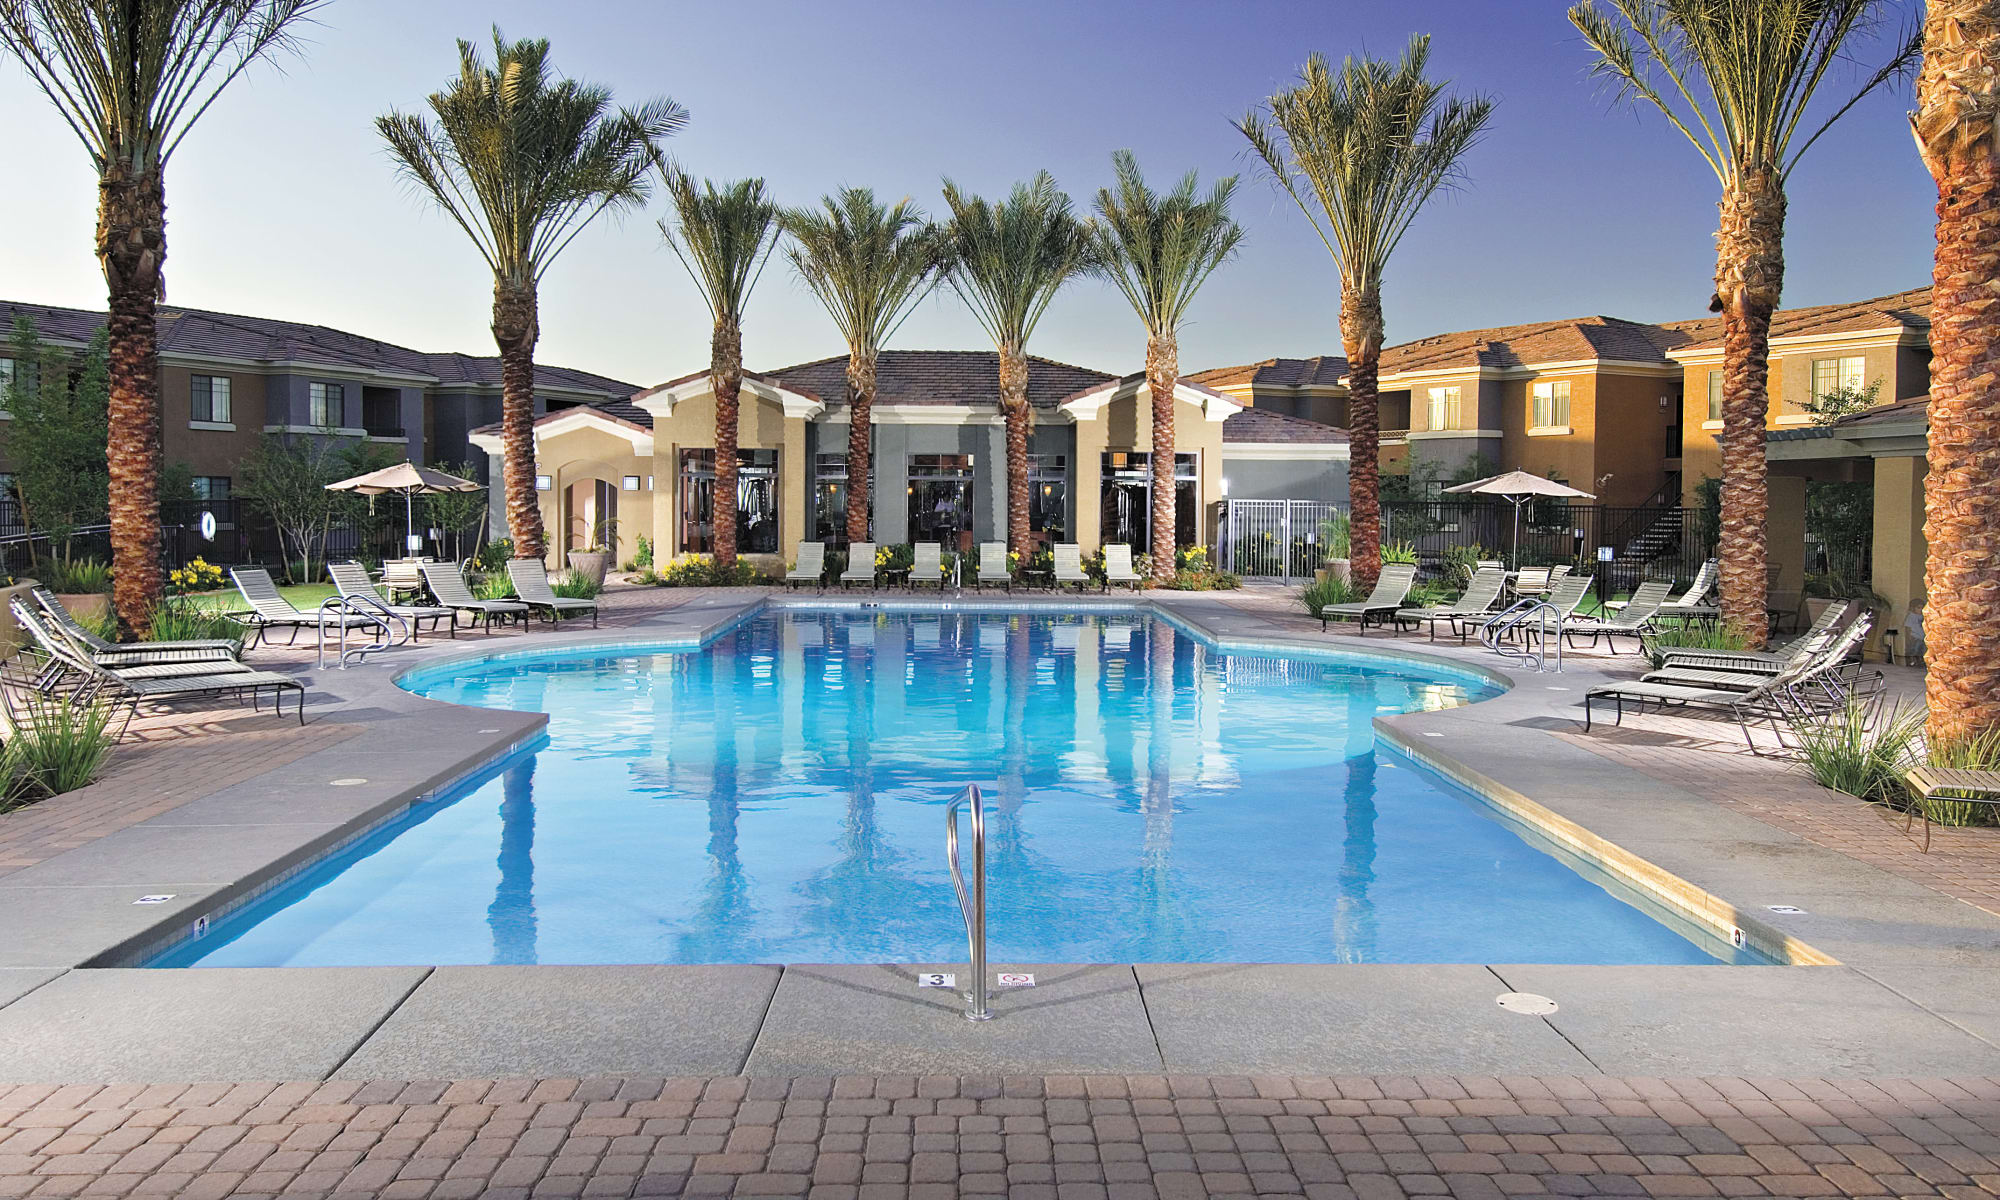 Apartments at Broadstone Desert Sky in Phoenix, Arizona